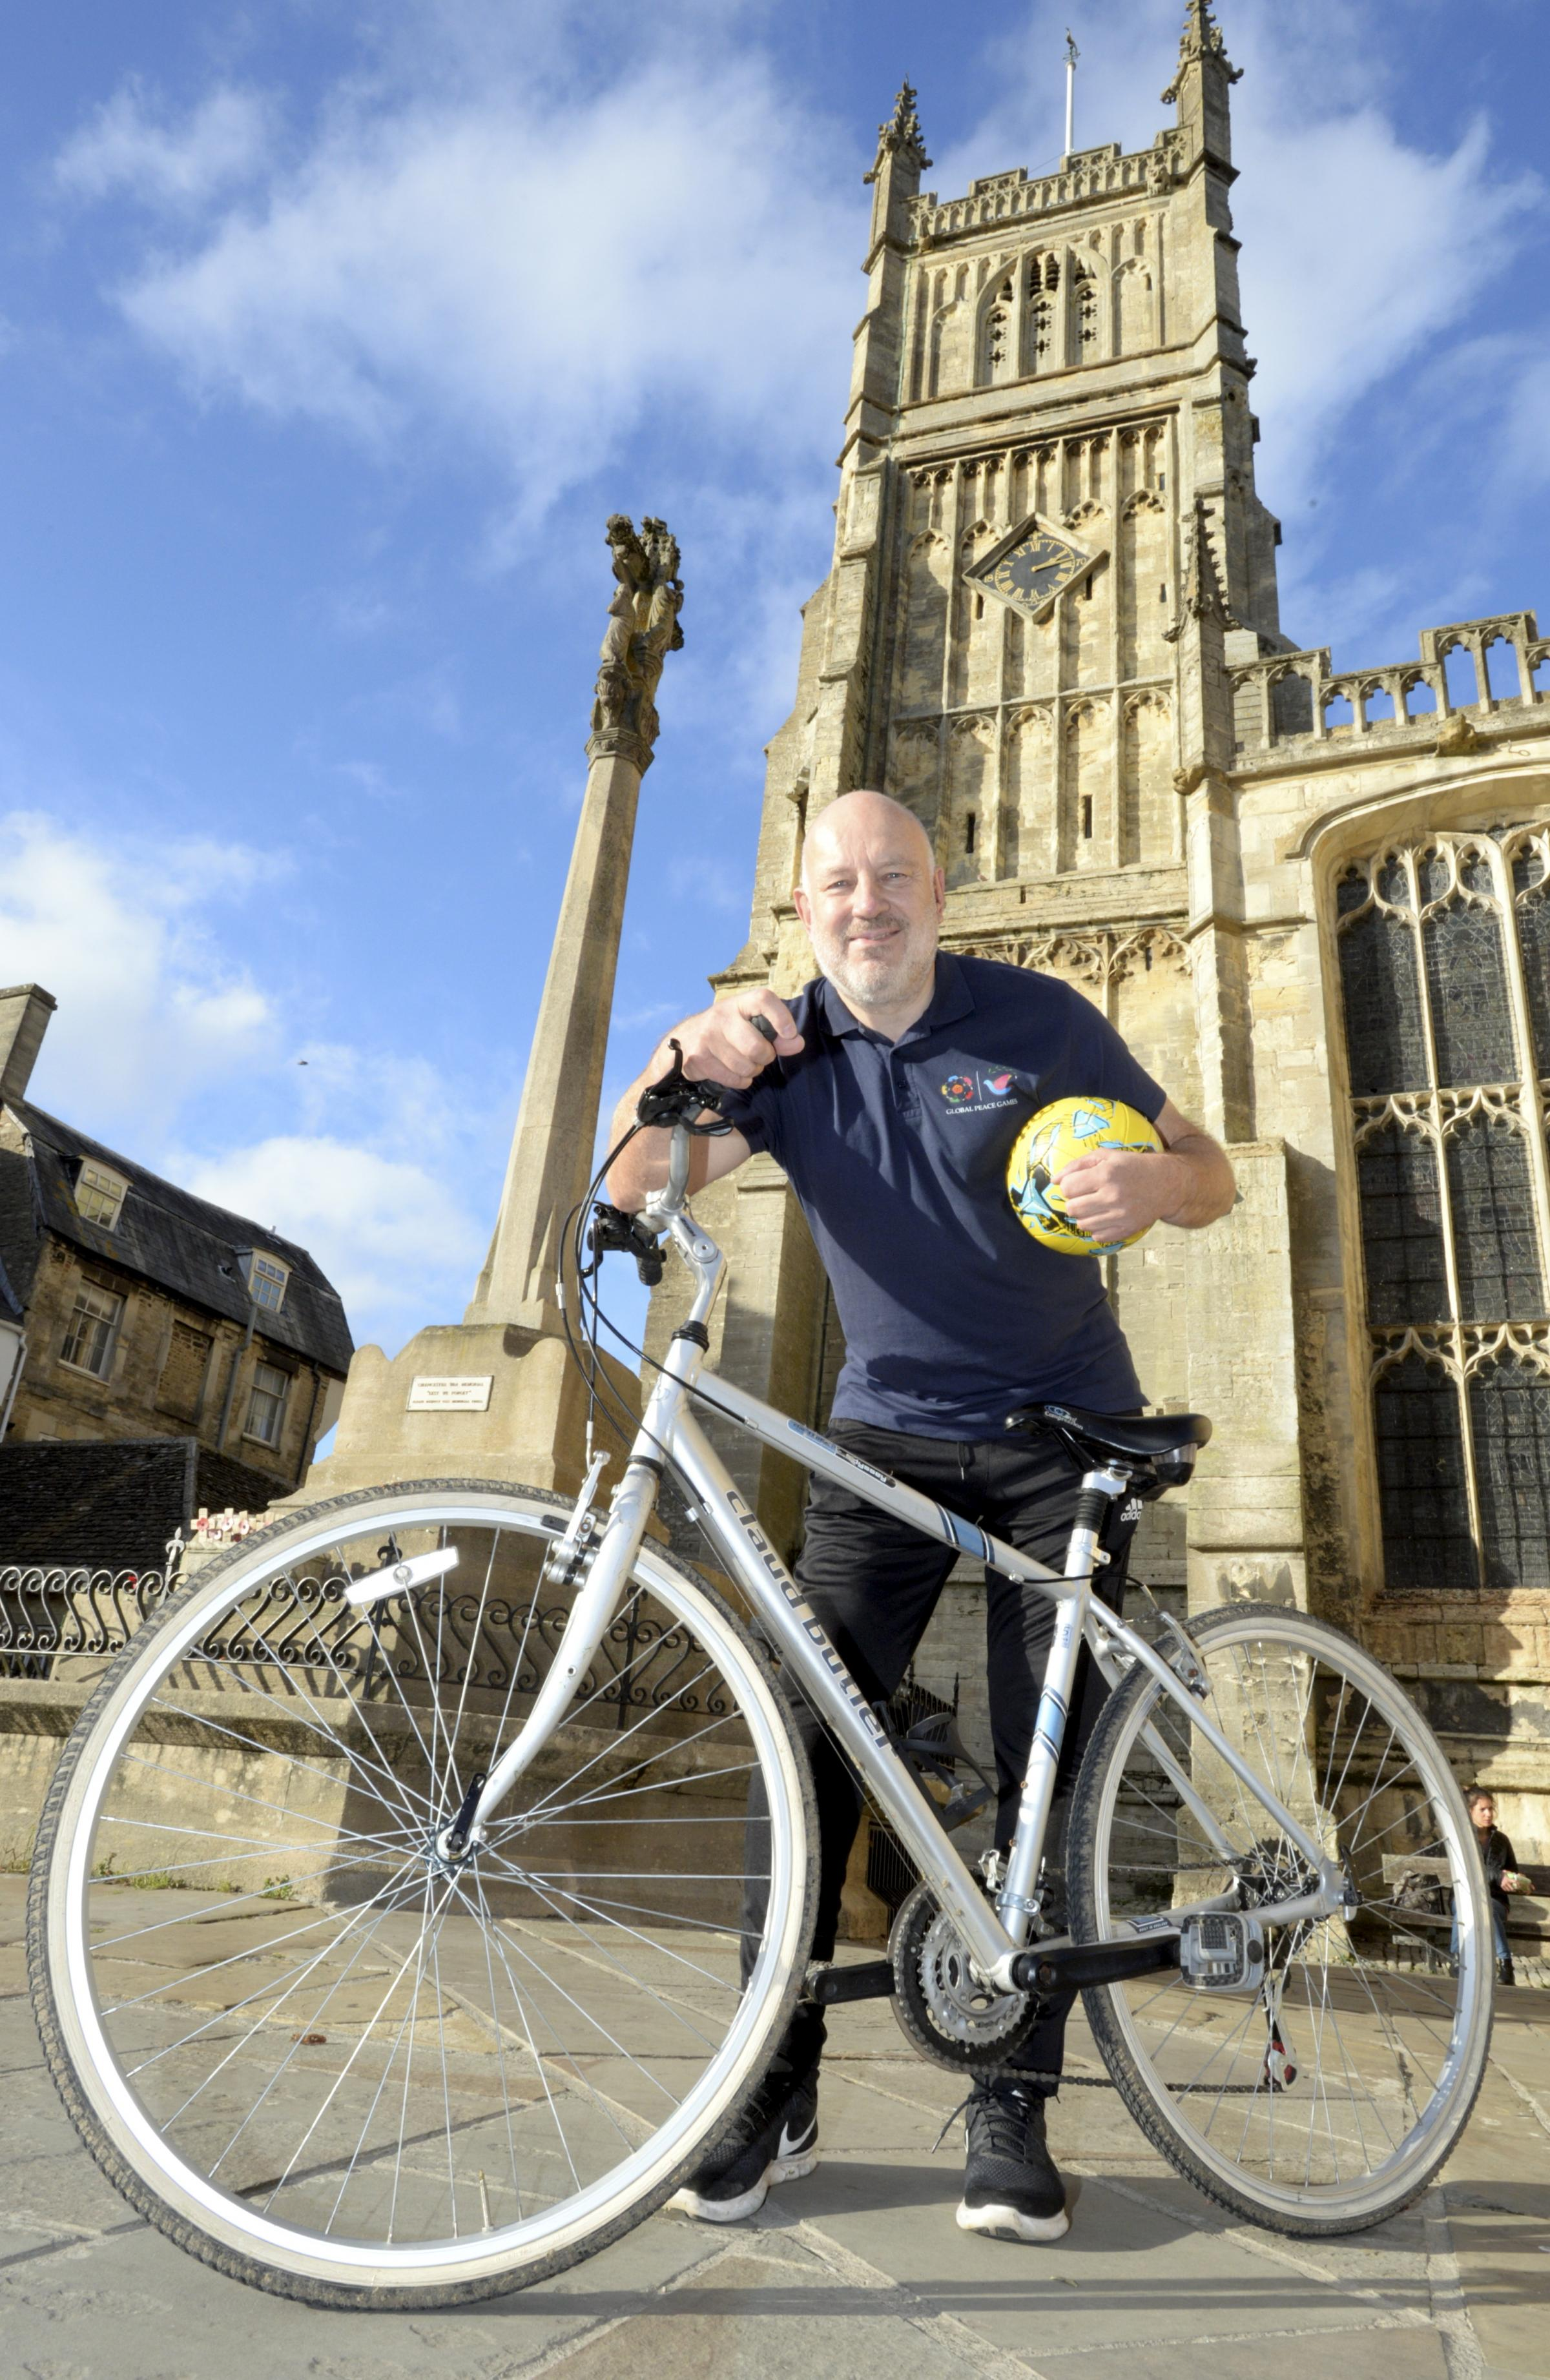 This Country star's epic 100 mile bike ride for charity